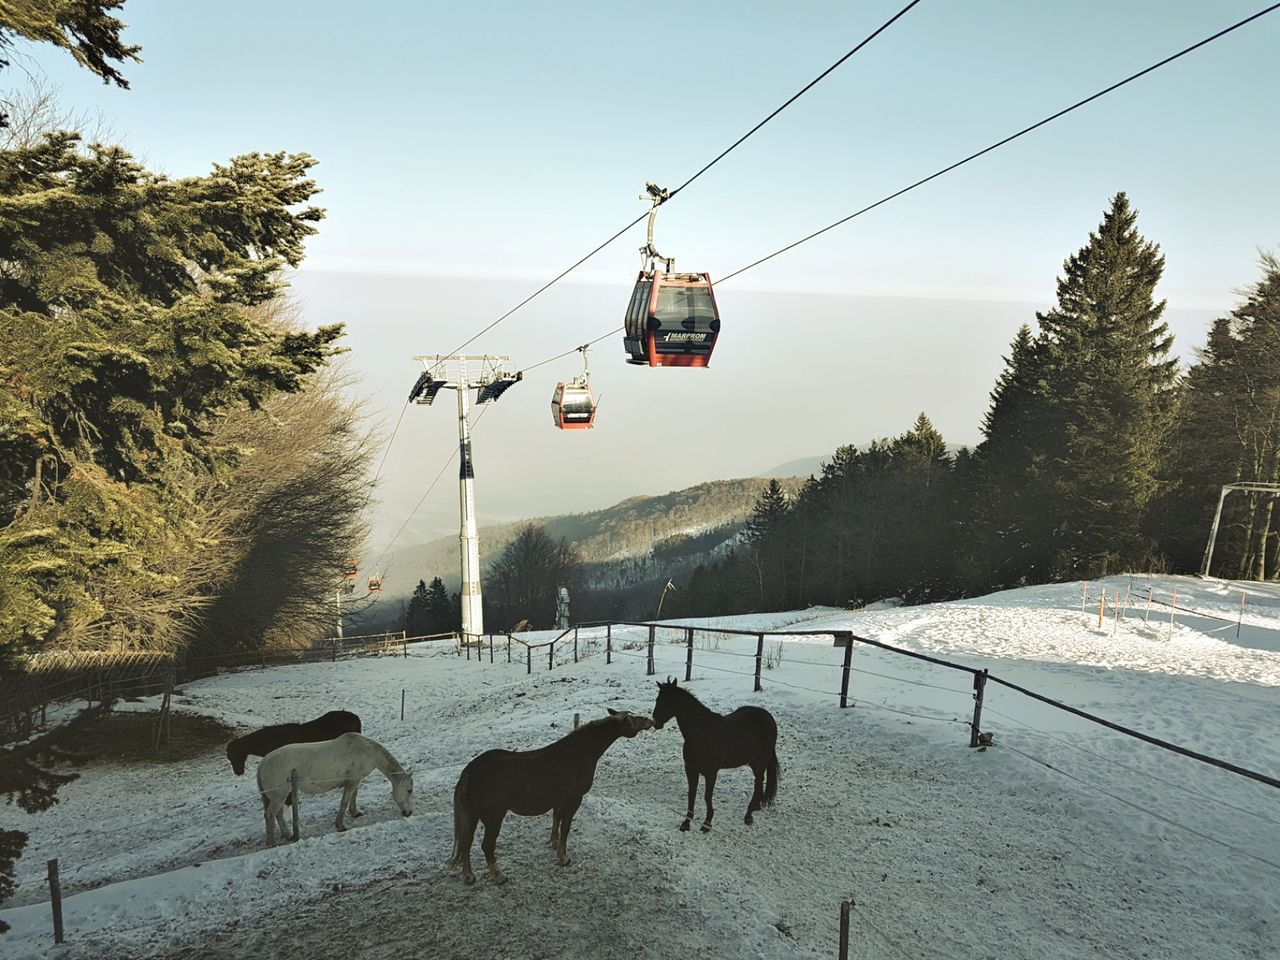 cold temperature, snow, winter, nature, tree, transportation, cable, sky, day, field, outdoors, beauty in nature, ski lift, mammal, landscape, overhead cable car, domestic animals, scenics, mountain, animal themes, no people